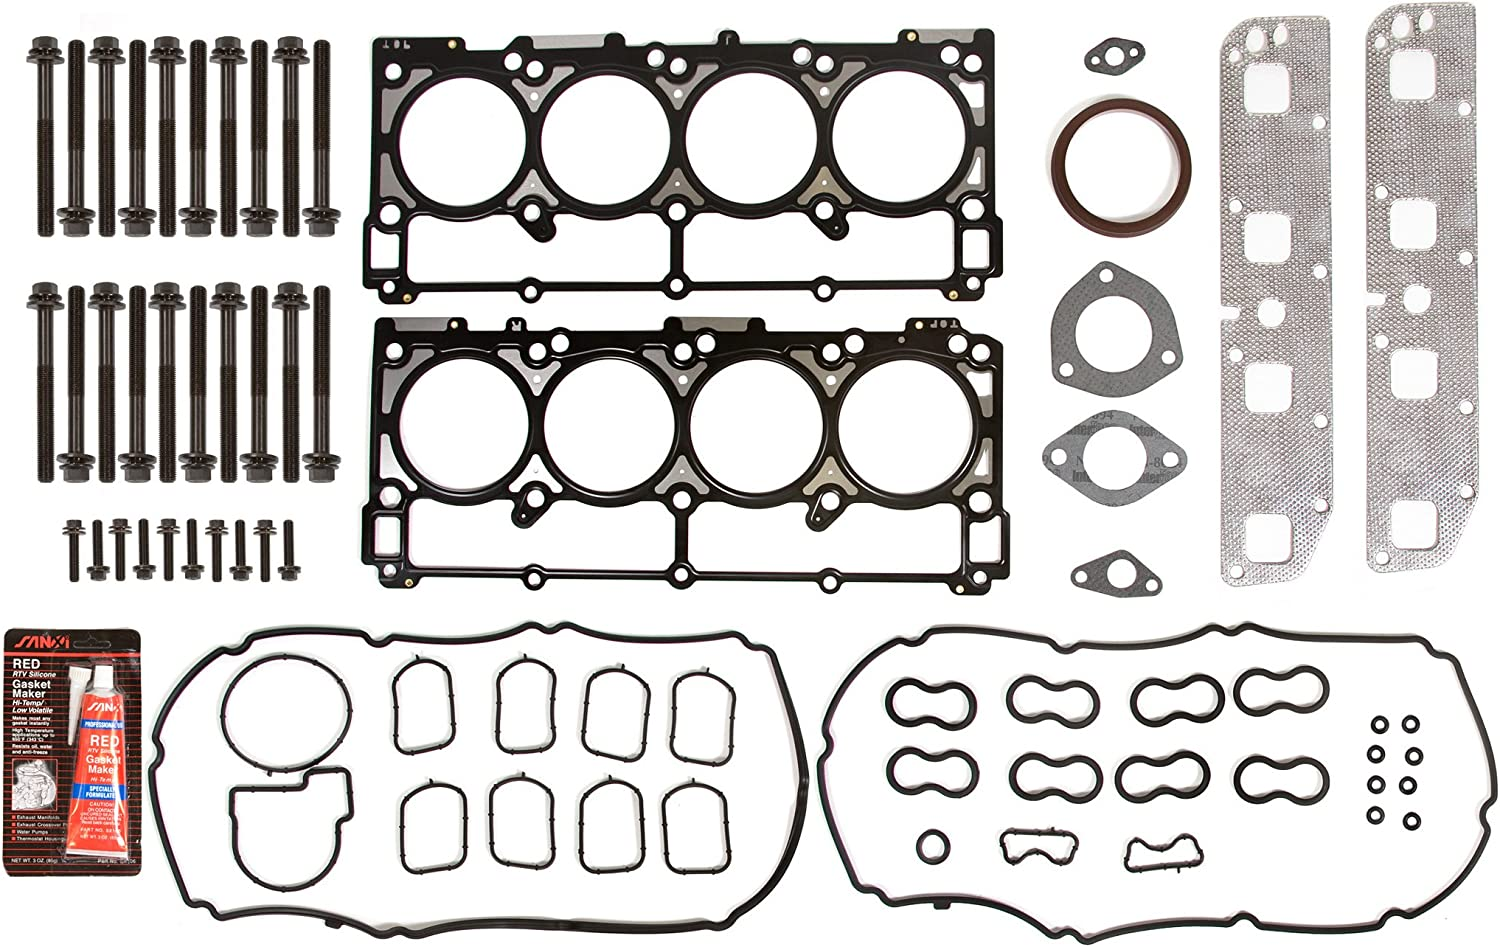 Evergreen HSHB8-30157 Cylinder Head Gasket Set Head Bolt